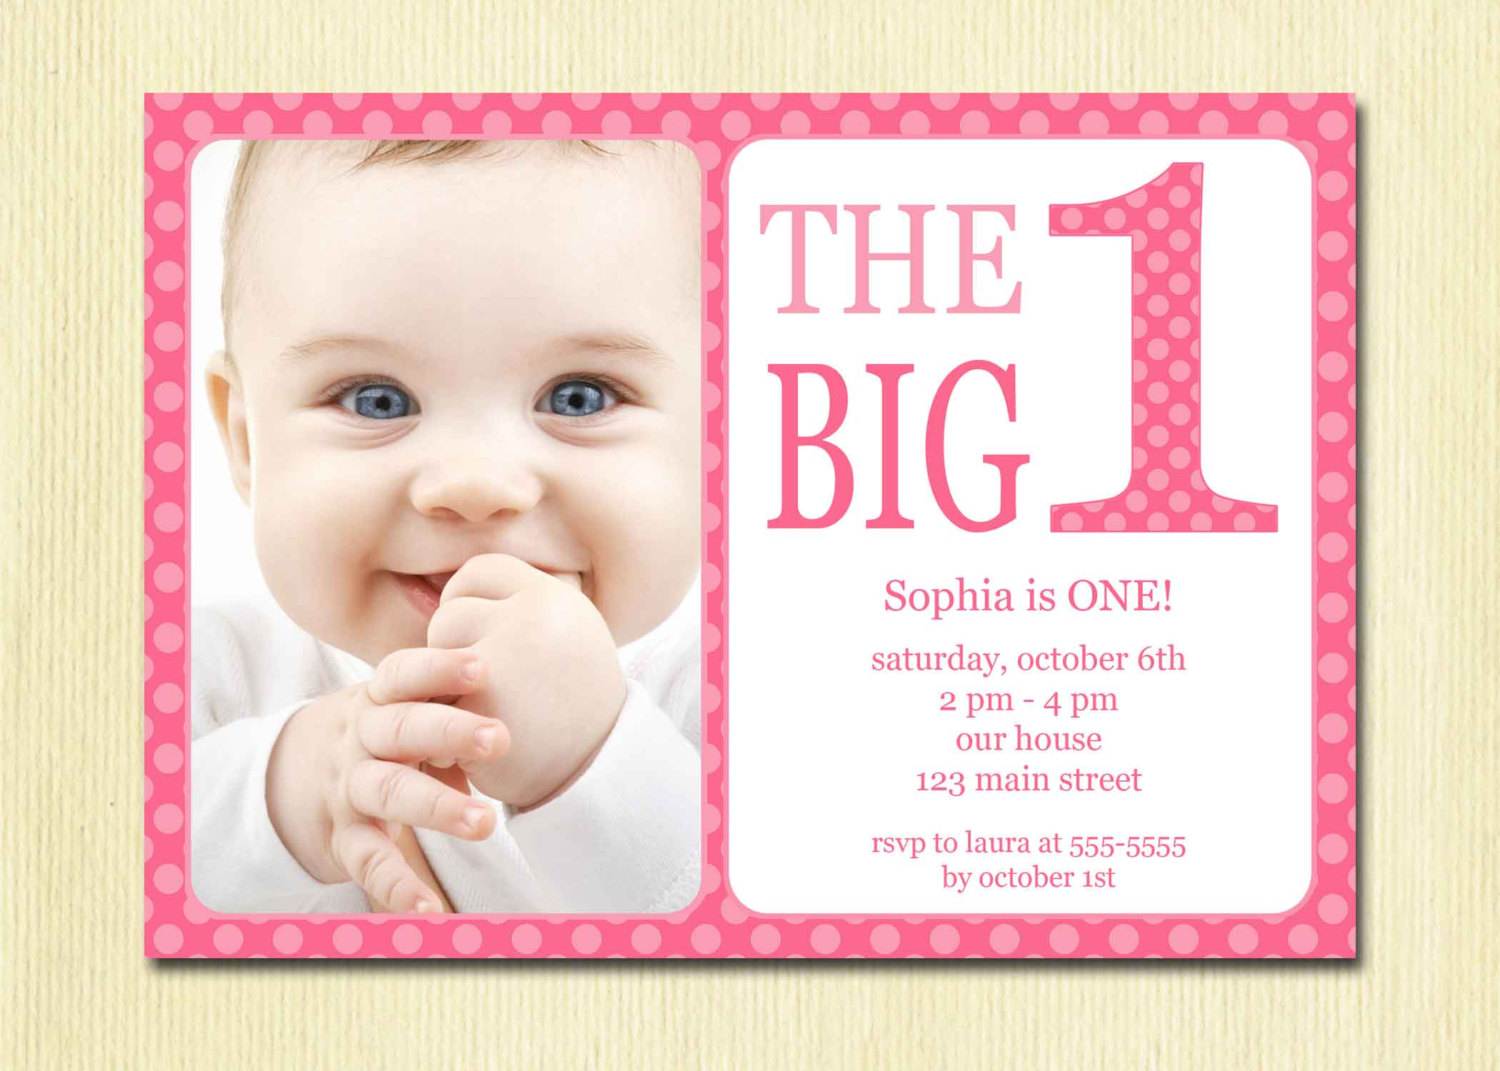 baby birthday invitation card design ; first_birthday_invitation_template_free_with_a_unique_invitation_templates_invitations_design_example_16_9